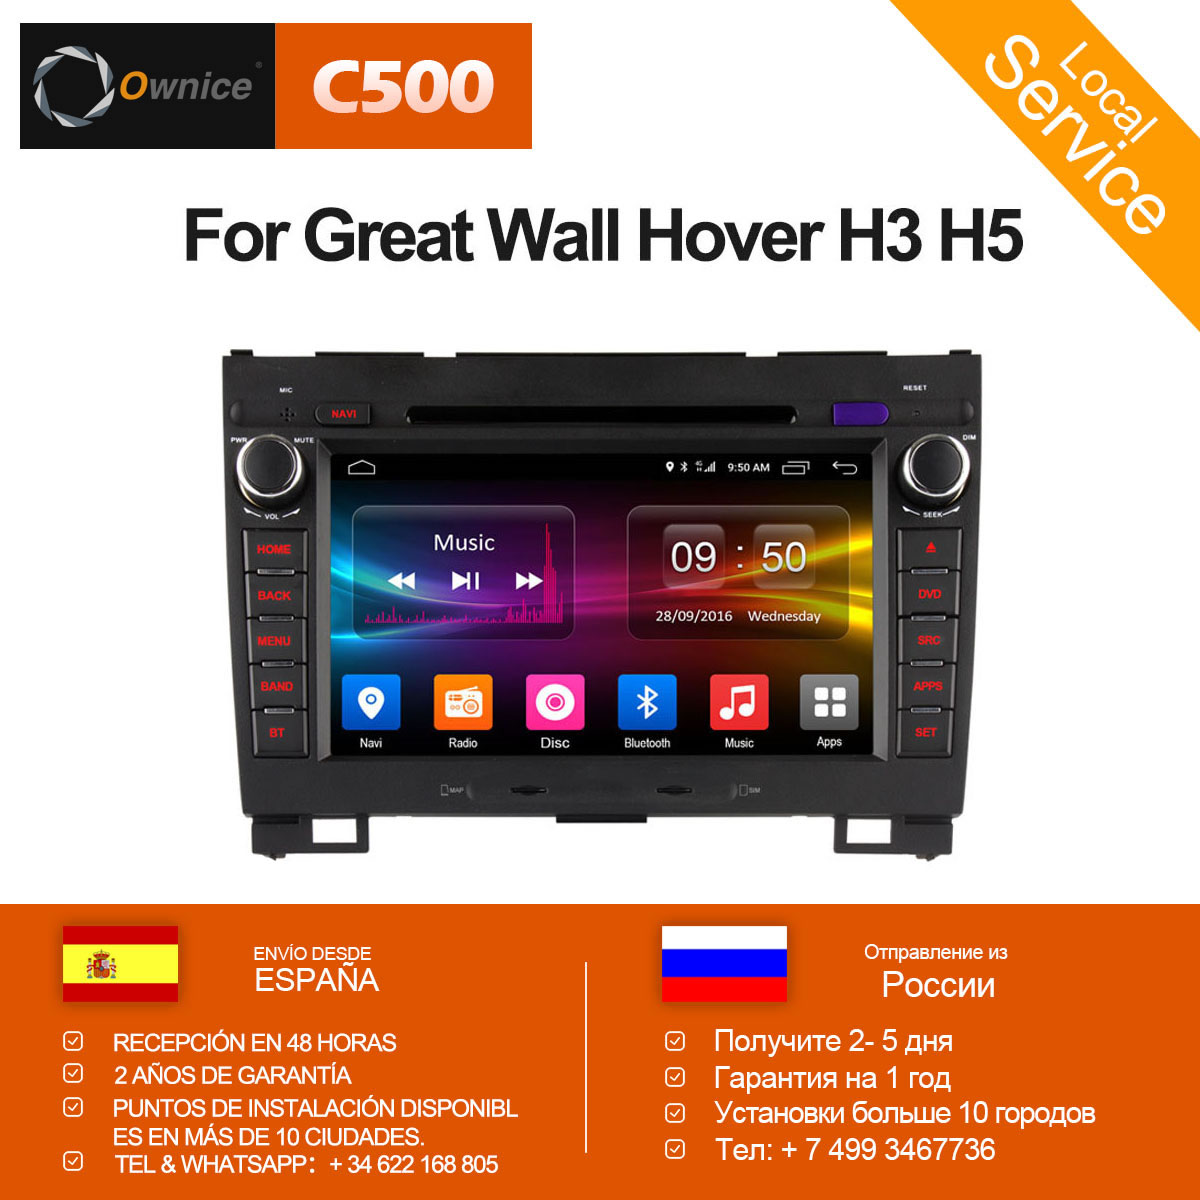 Ownice C500 4g SIM LTE Android 6.0 Quad Core lecteur dvd de Voiture pour Greatwall Haval Hover H5 H3 gps navi Radio WIFI 2 gb RAM 32 gb